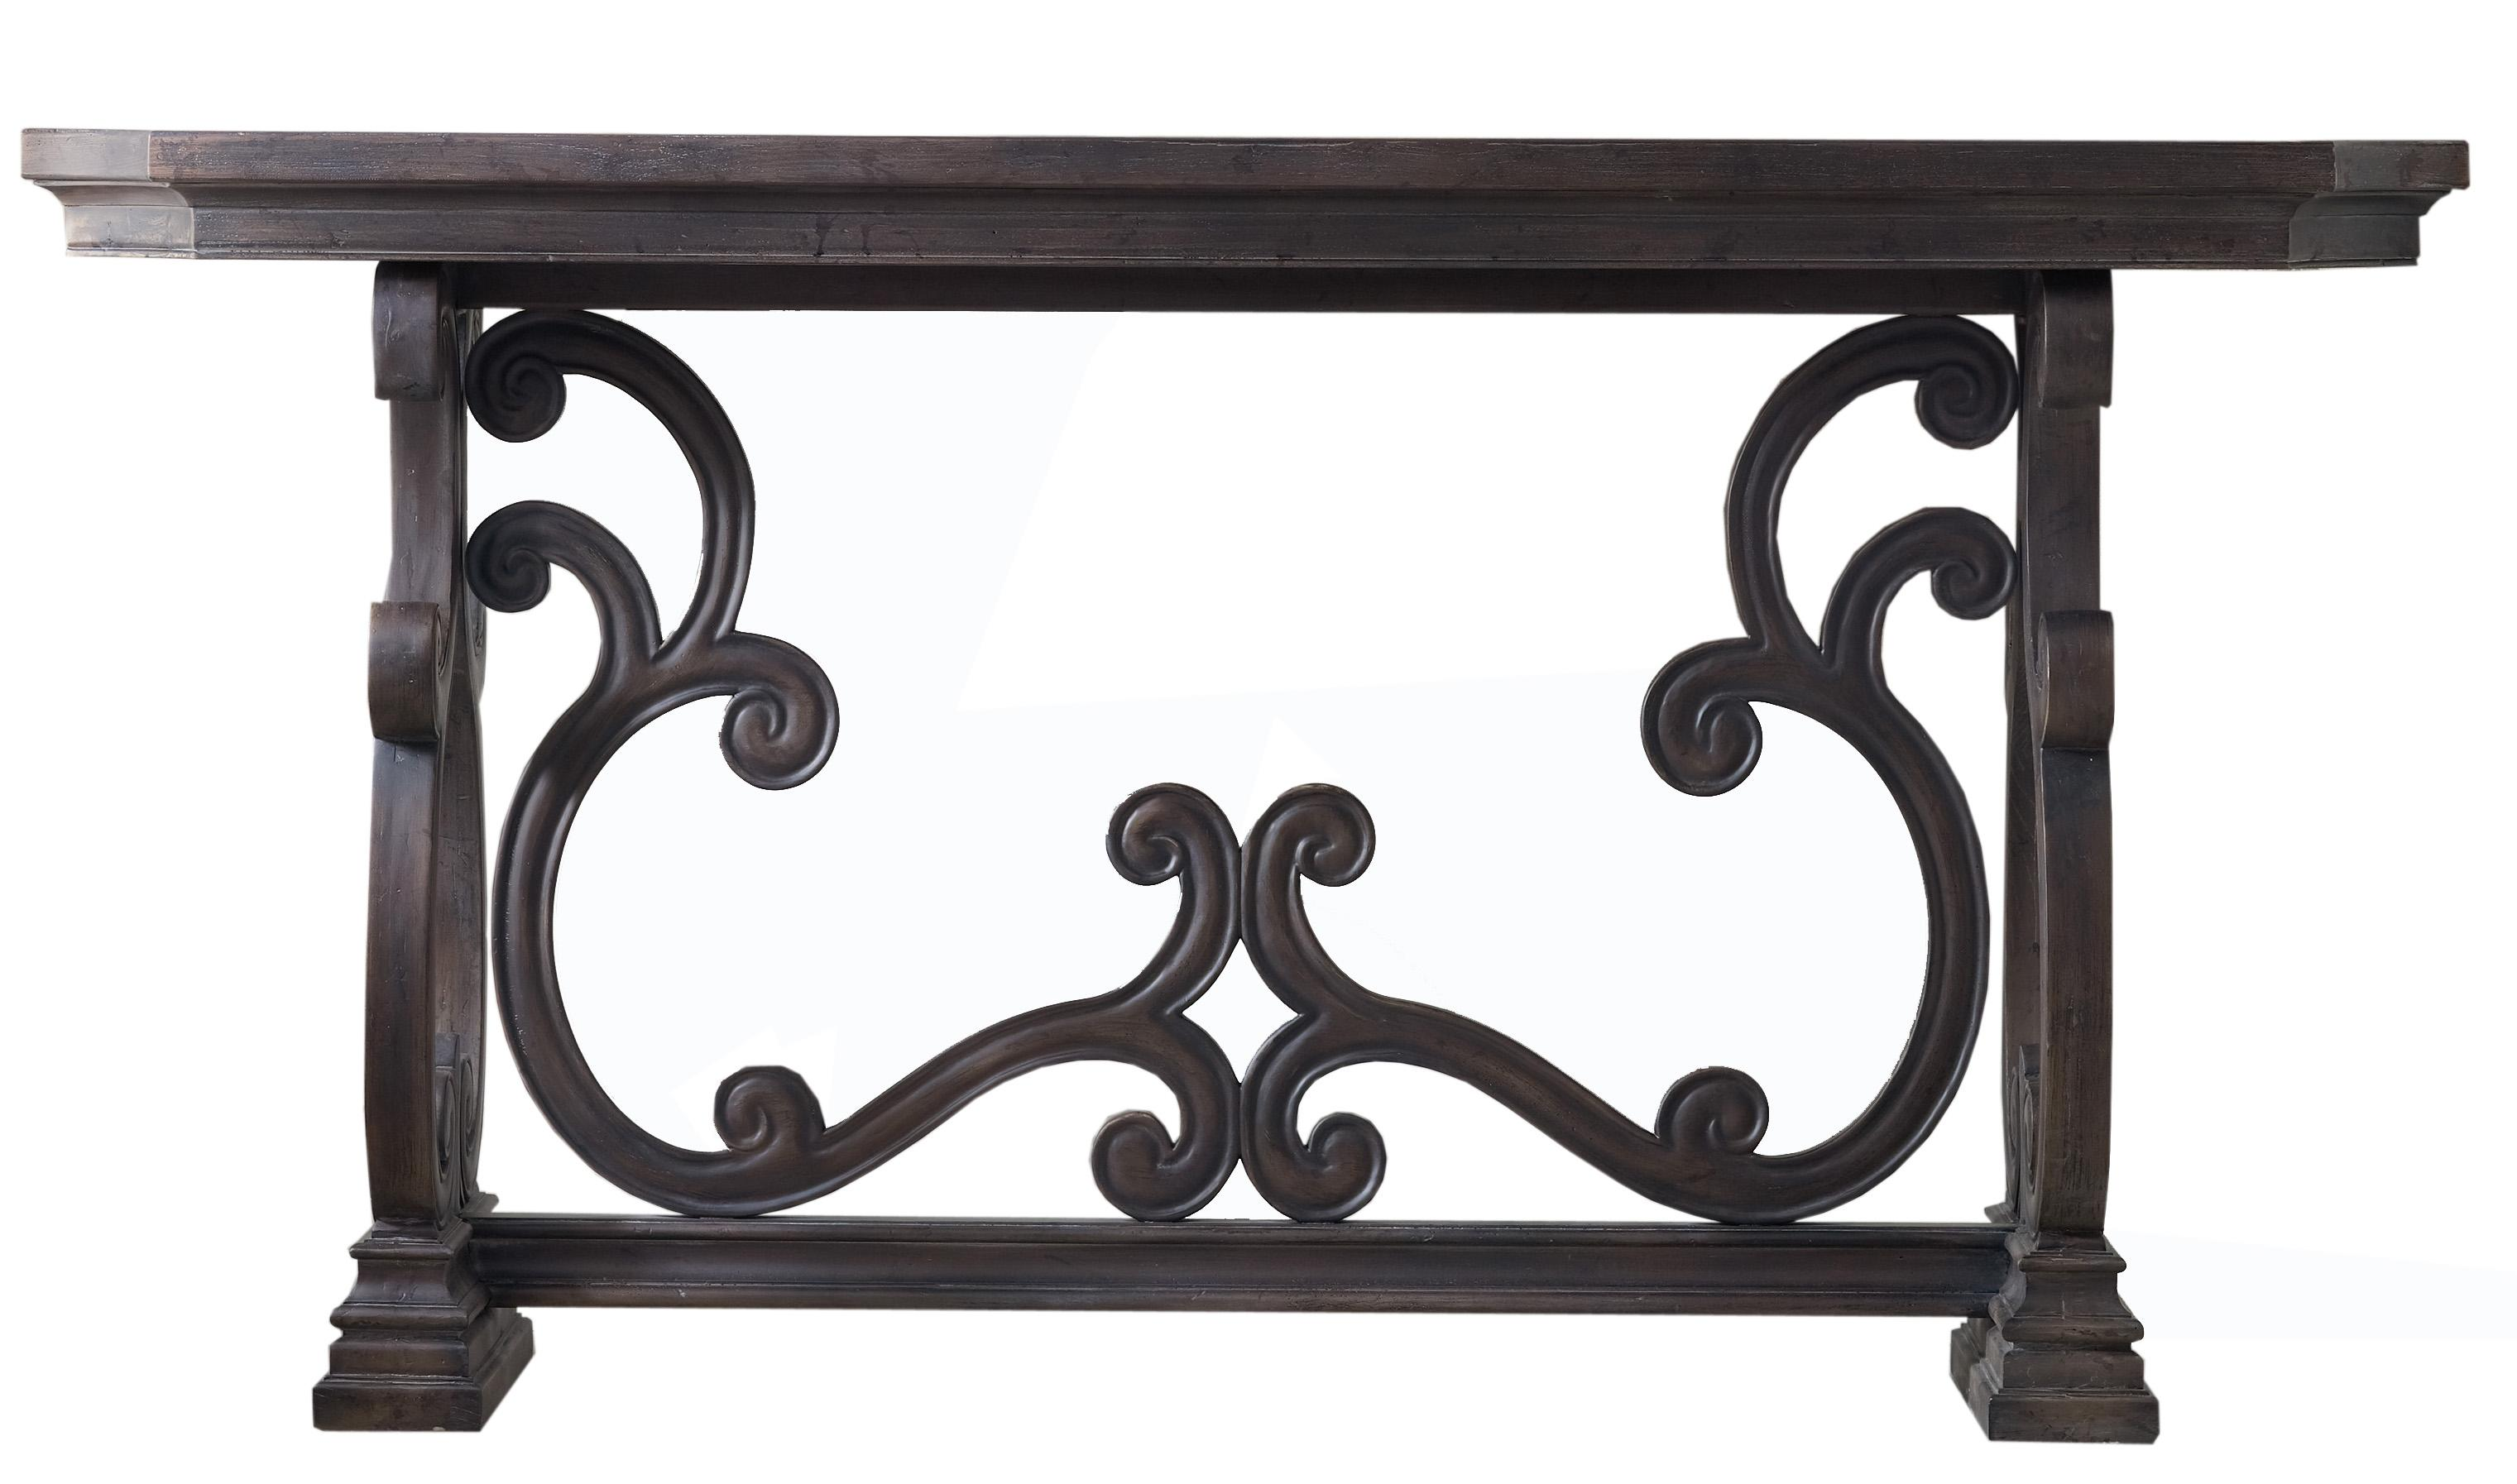 Hooker Furniture Living Room Accents Da Valle Scroll Console - Item Number: 5165-85001